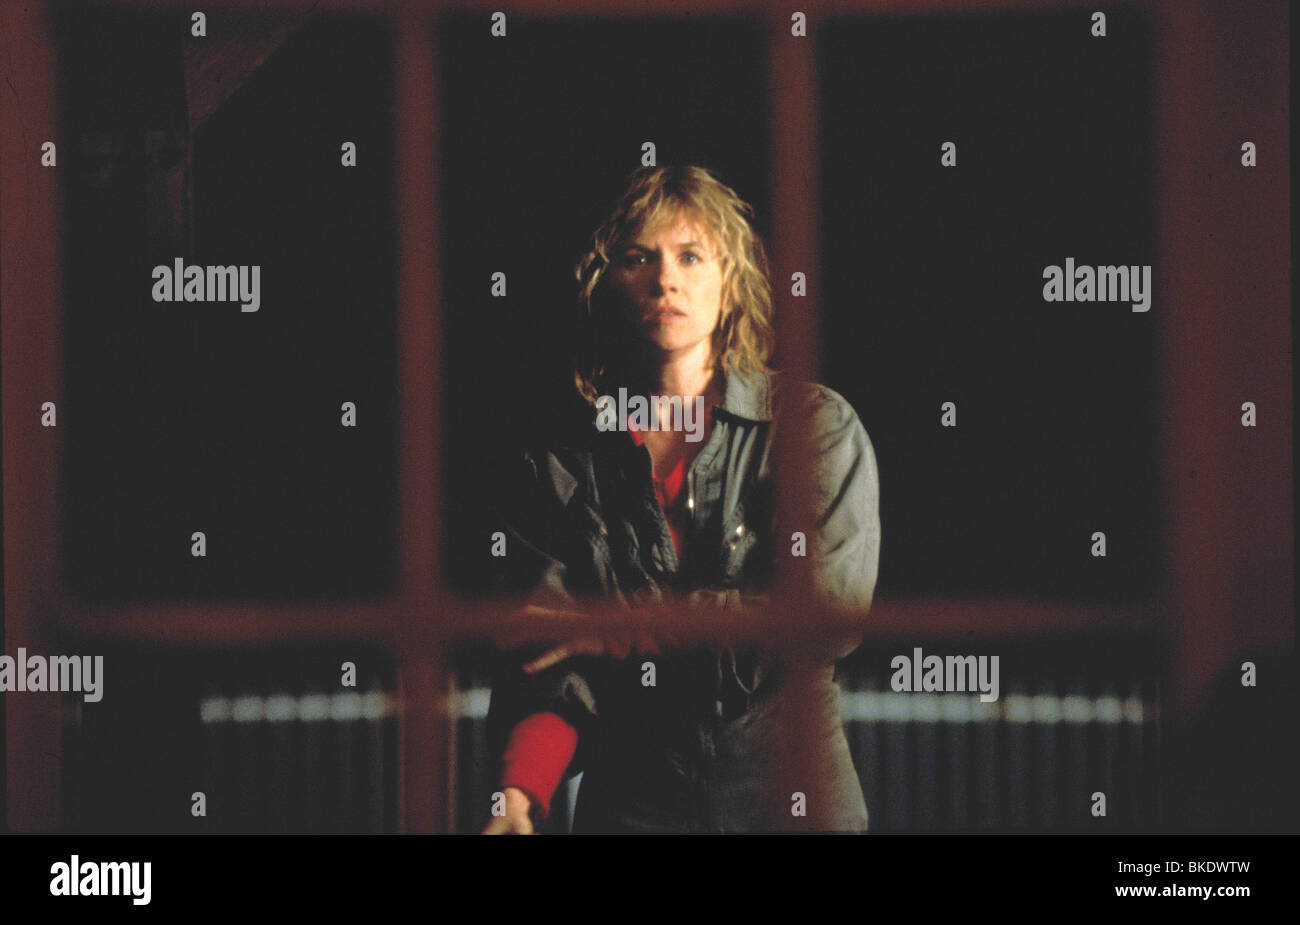 NOWHERE TO HIDE (1987) AMY MADIGAN NWTH 001 - Stock Image